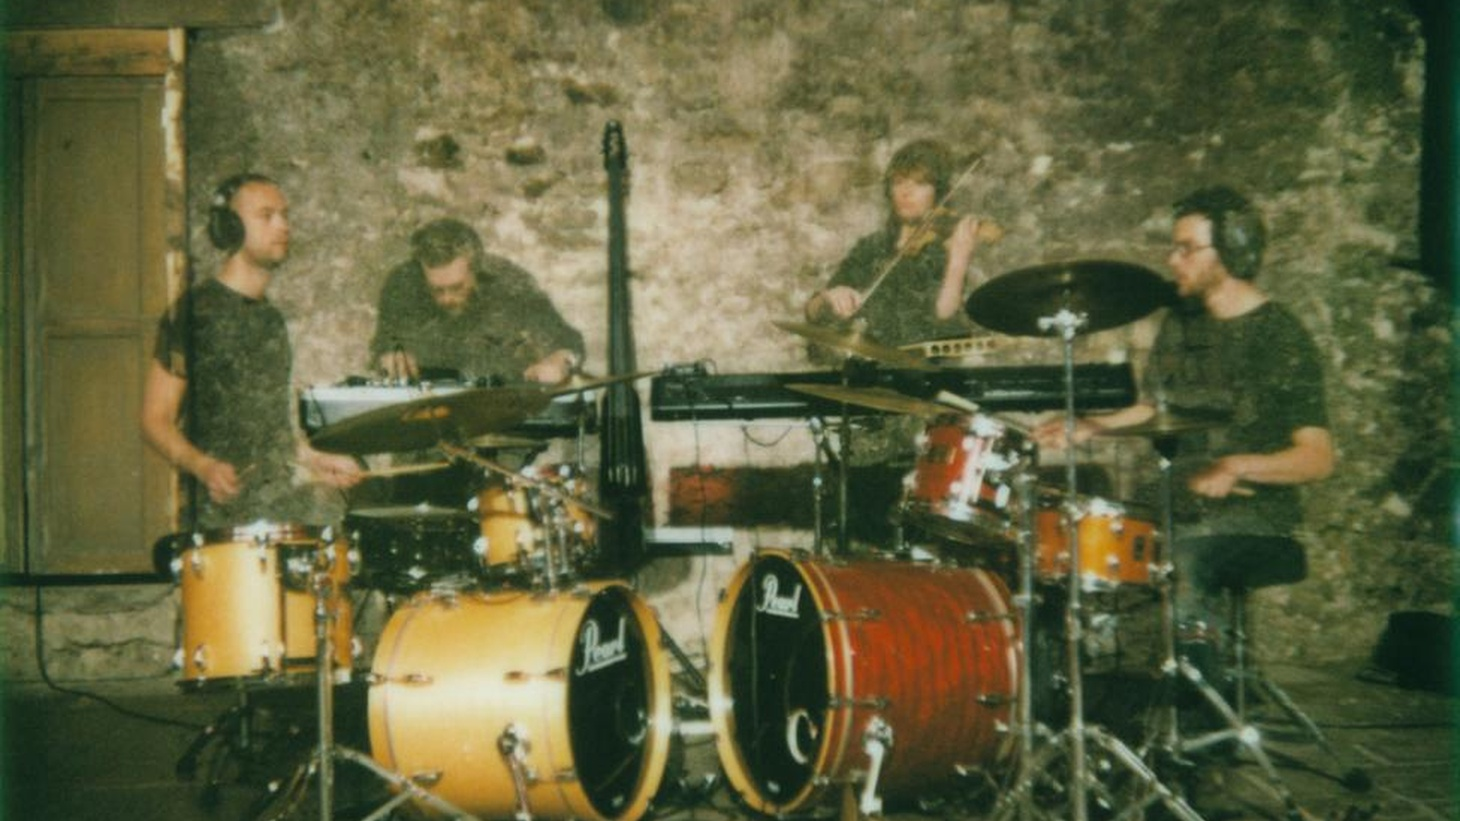 Edinburgh's Hidden Orchestra sound big because they employ two drummers. The core band is four musicians but on their new release...